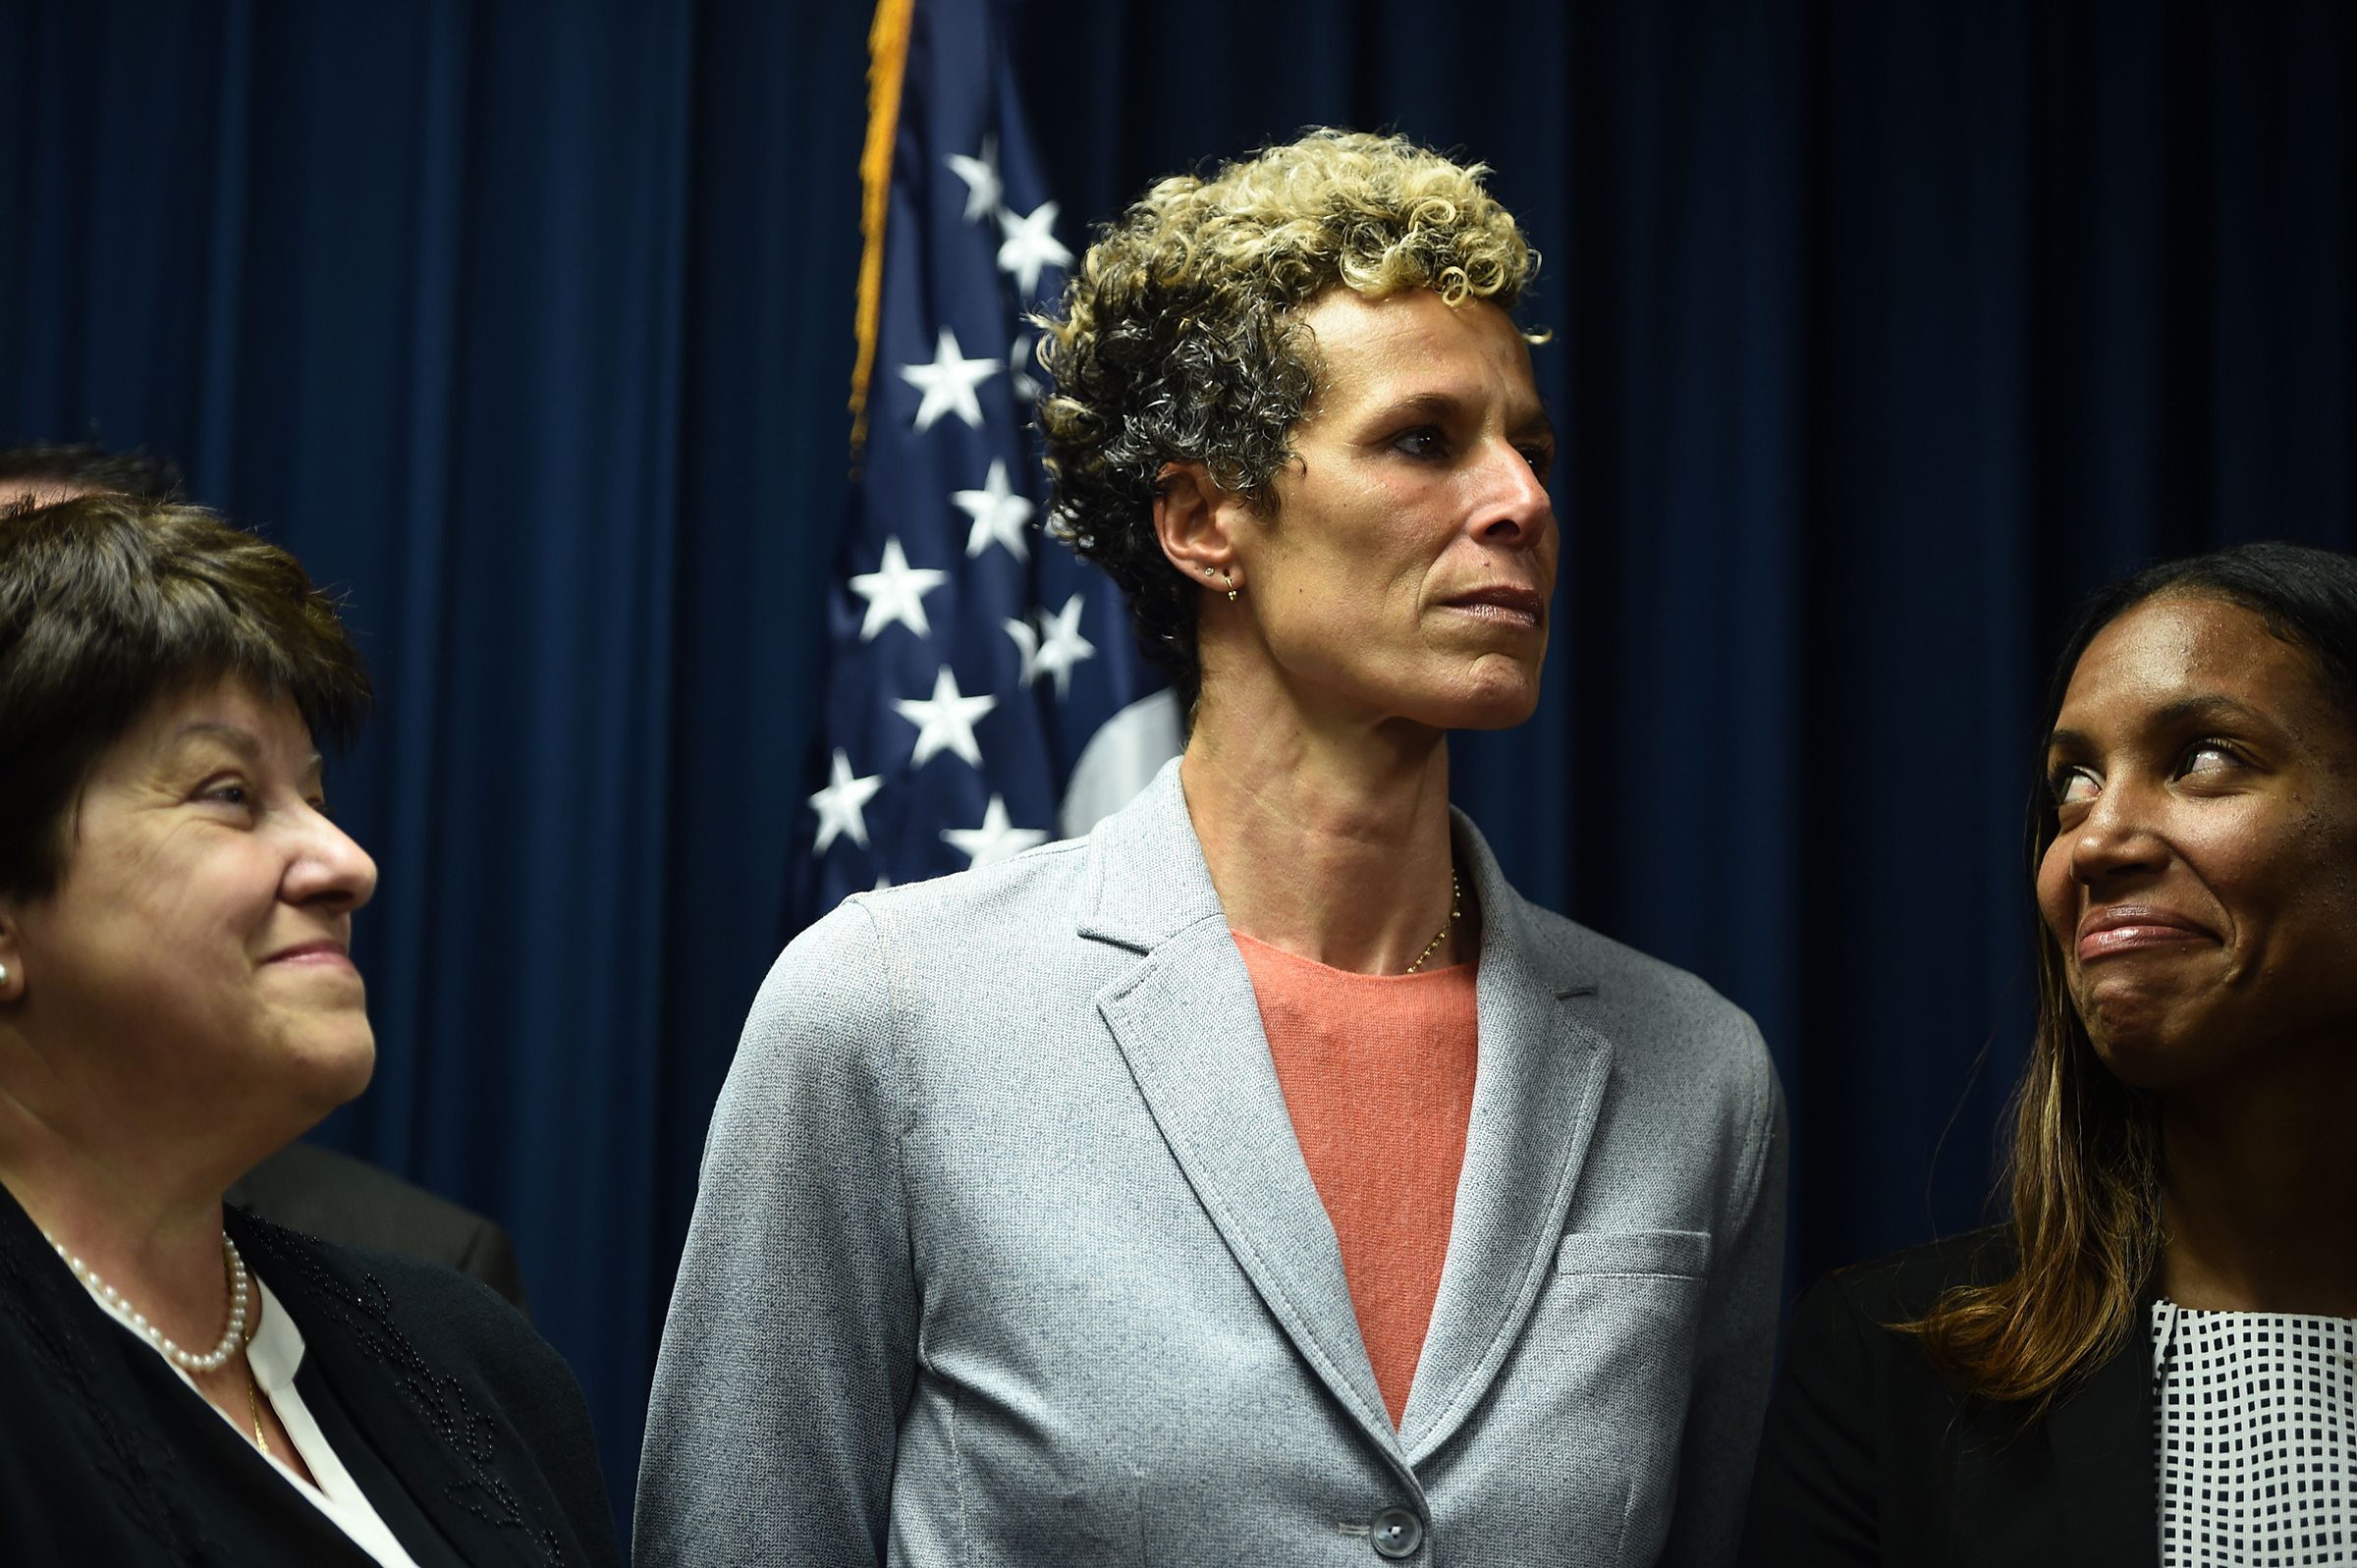 Andrea Constand, center, at a press conference on Sept. 25, 2018 in Norristown, Pa., after comedian Bill Cosby was sentenced to at least three years in prison.